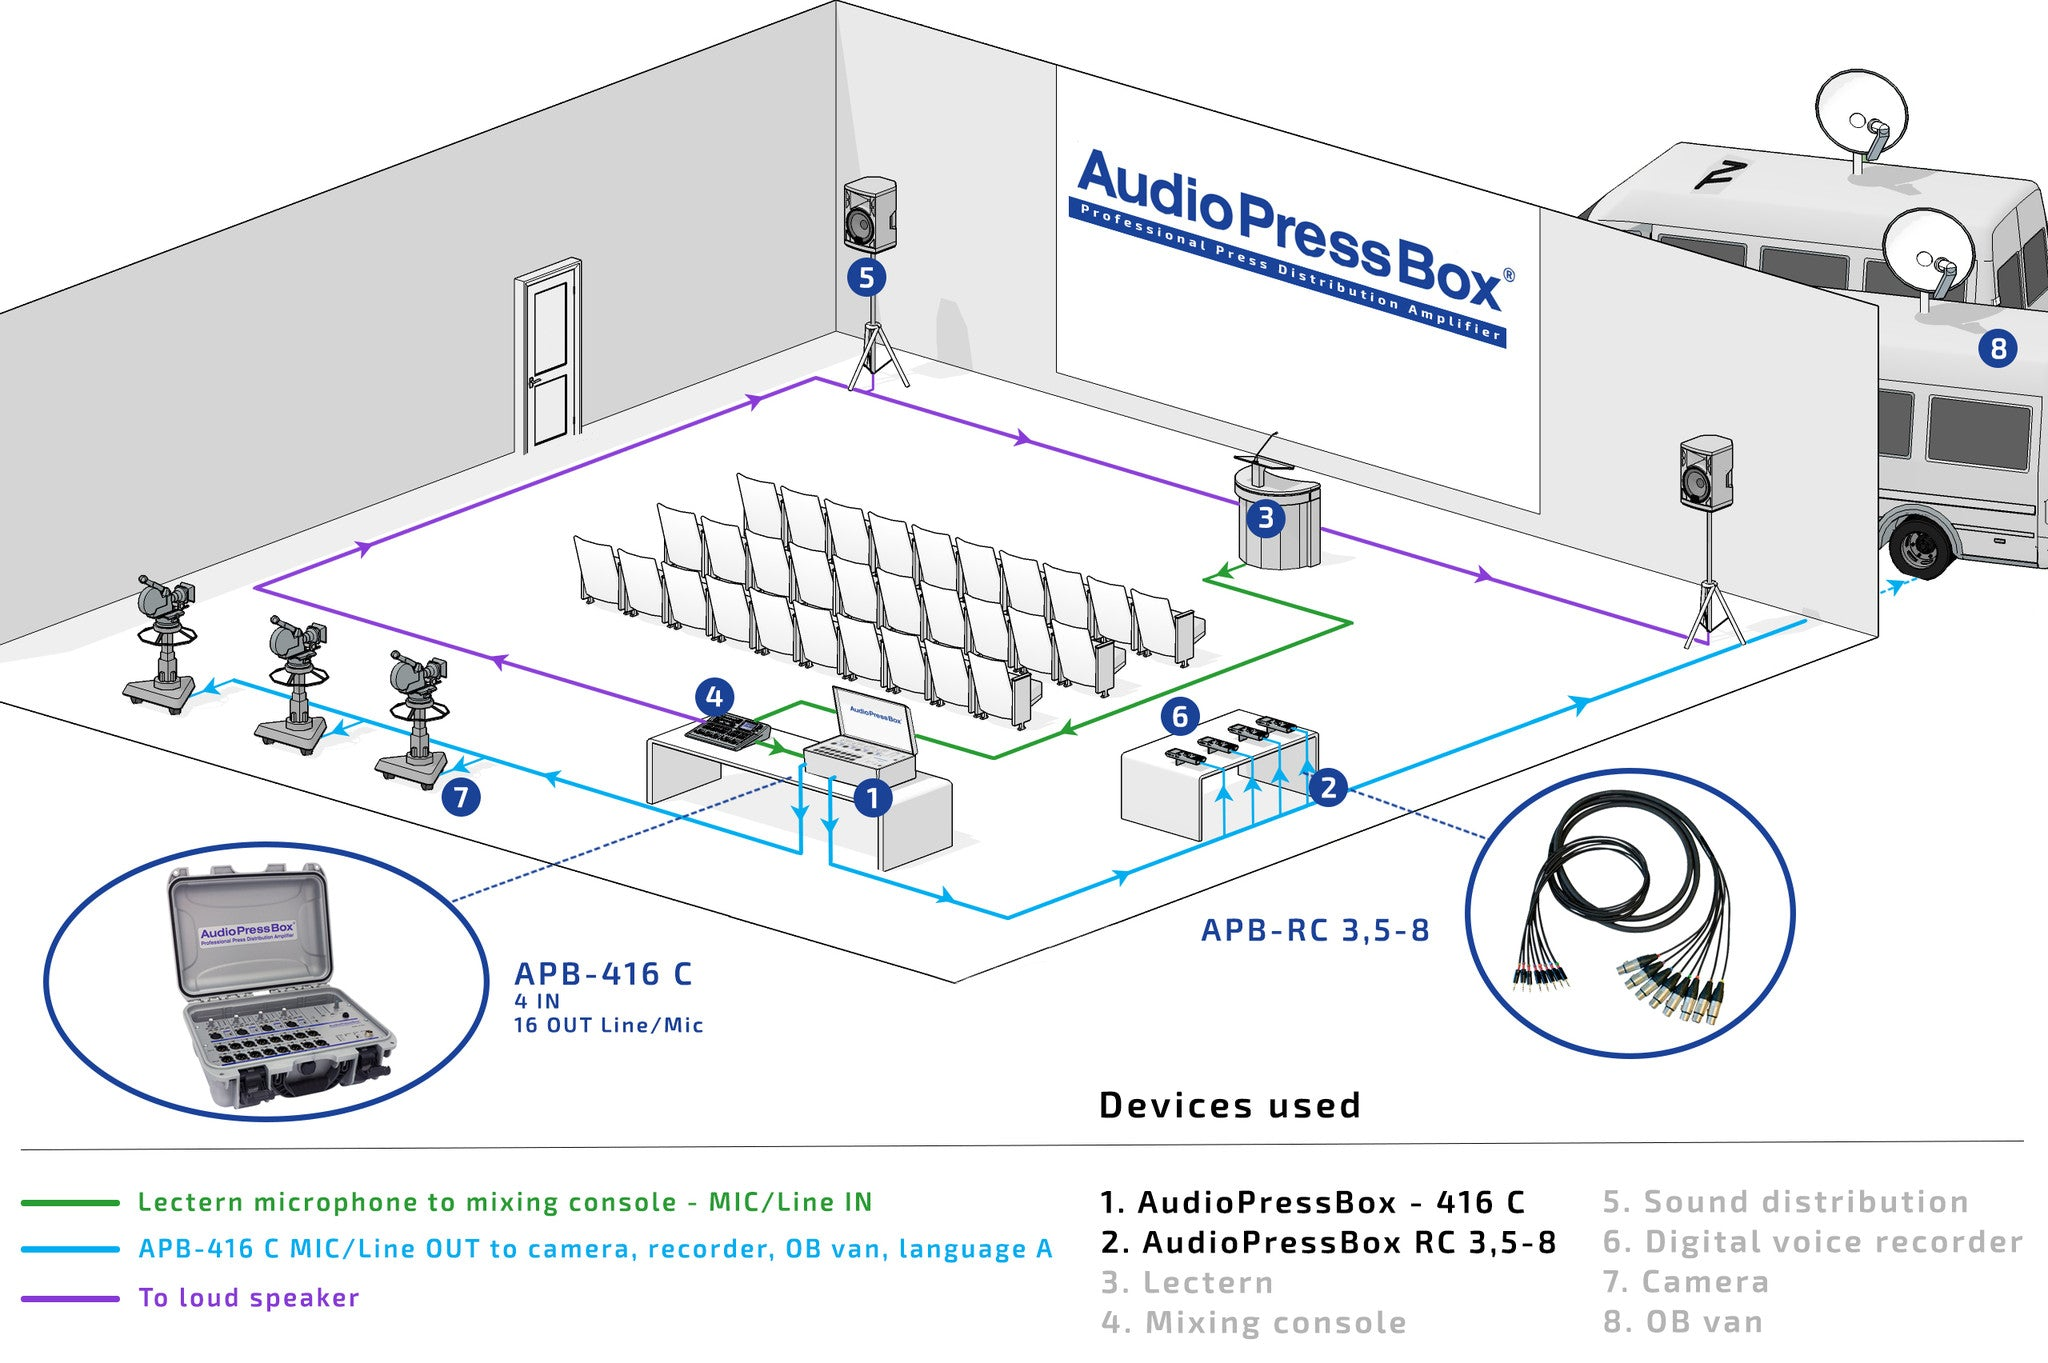 AudioPressBox, Mult Box, PressBox, Mult Box, Press Patch Box, Pressesplitter, APB-416 C.